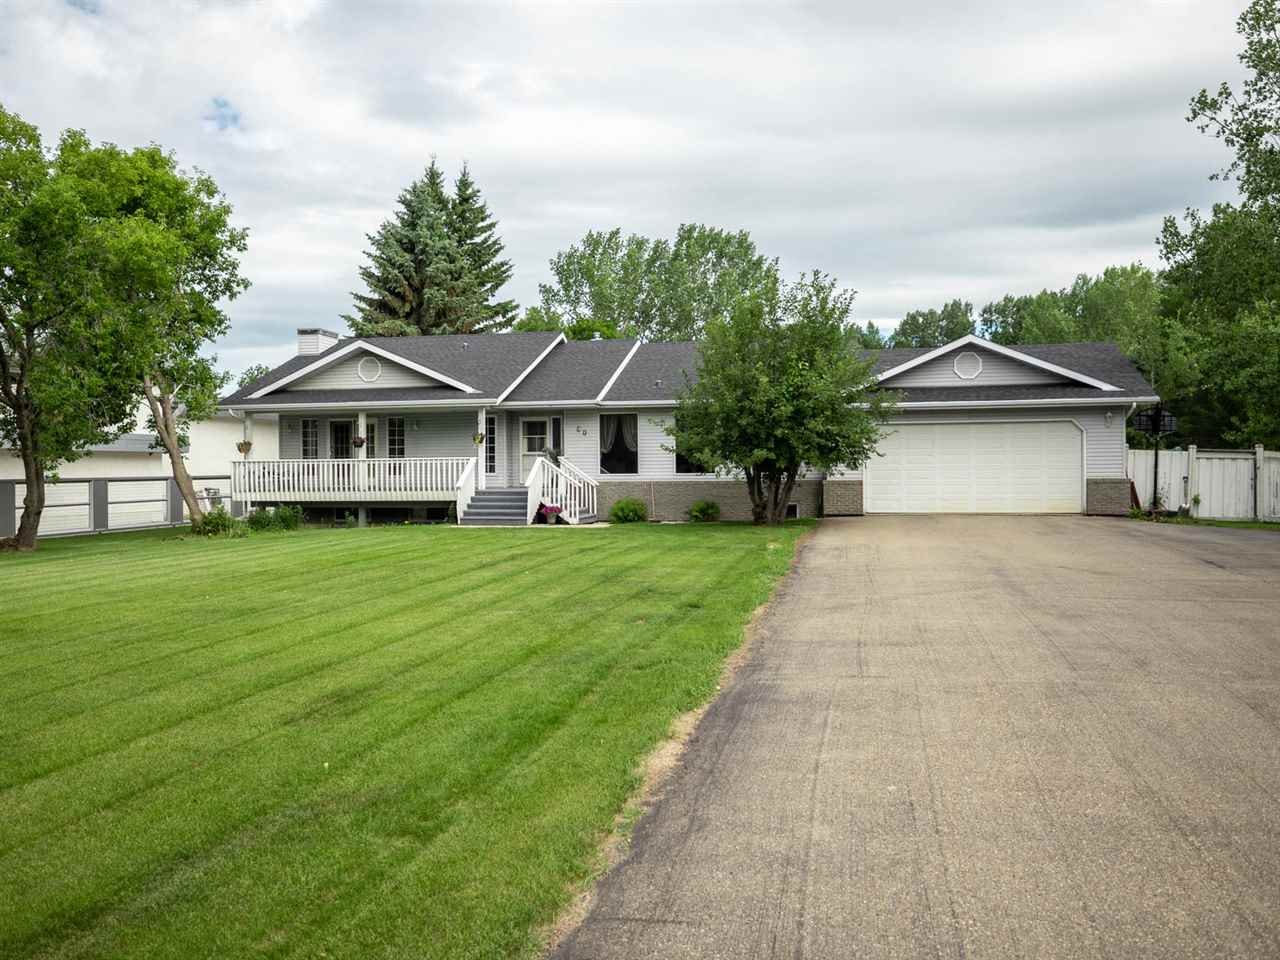 Main Photo: 60 Estate Way W: Rural Sturgeon County House for sale : MLS®# E4118602